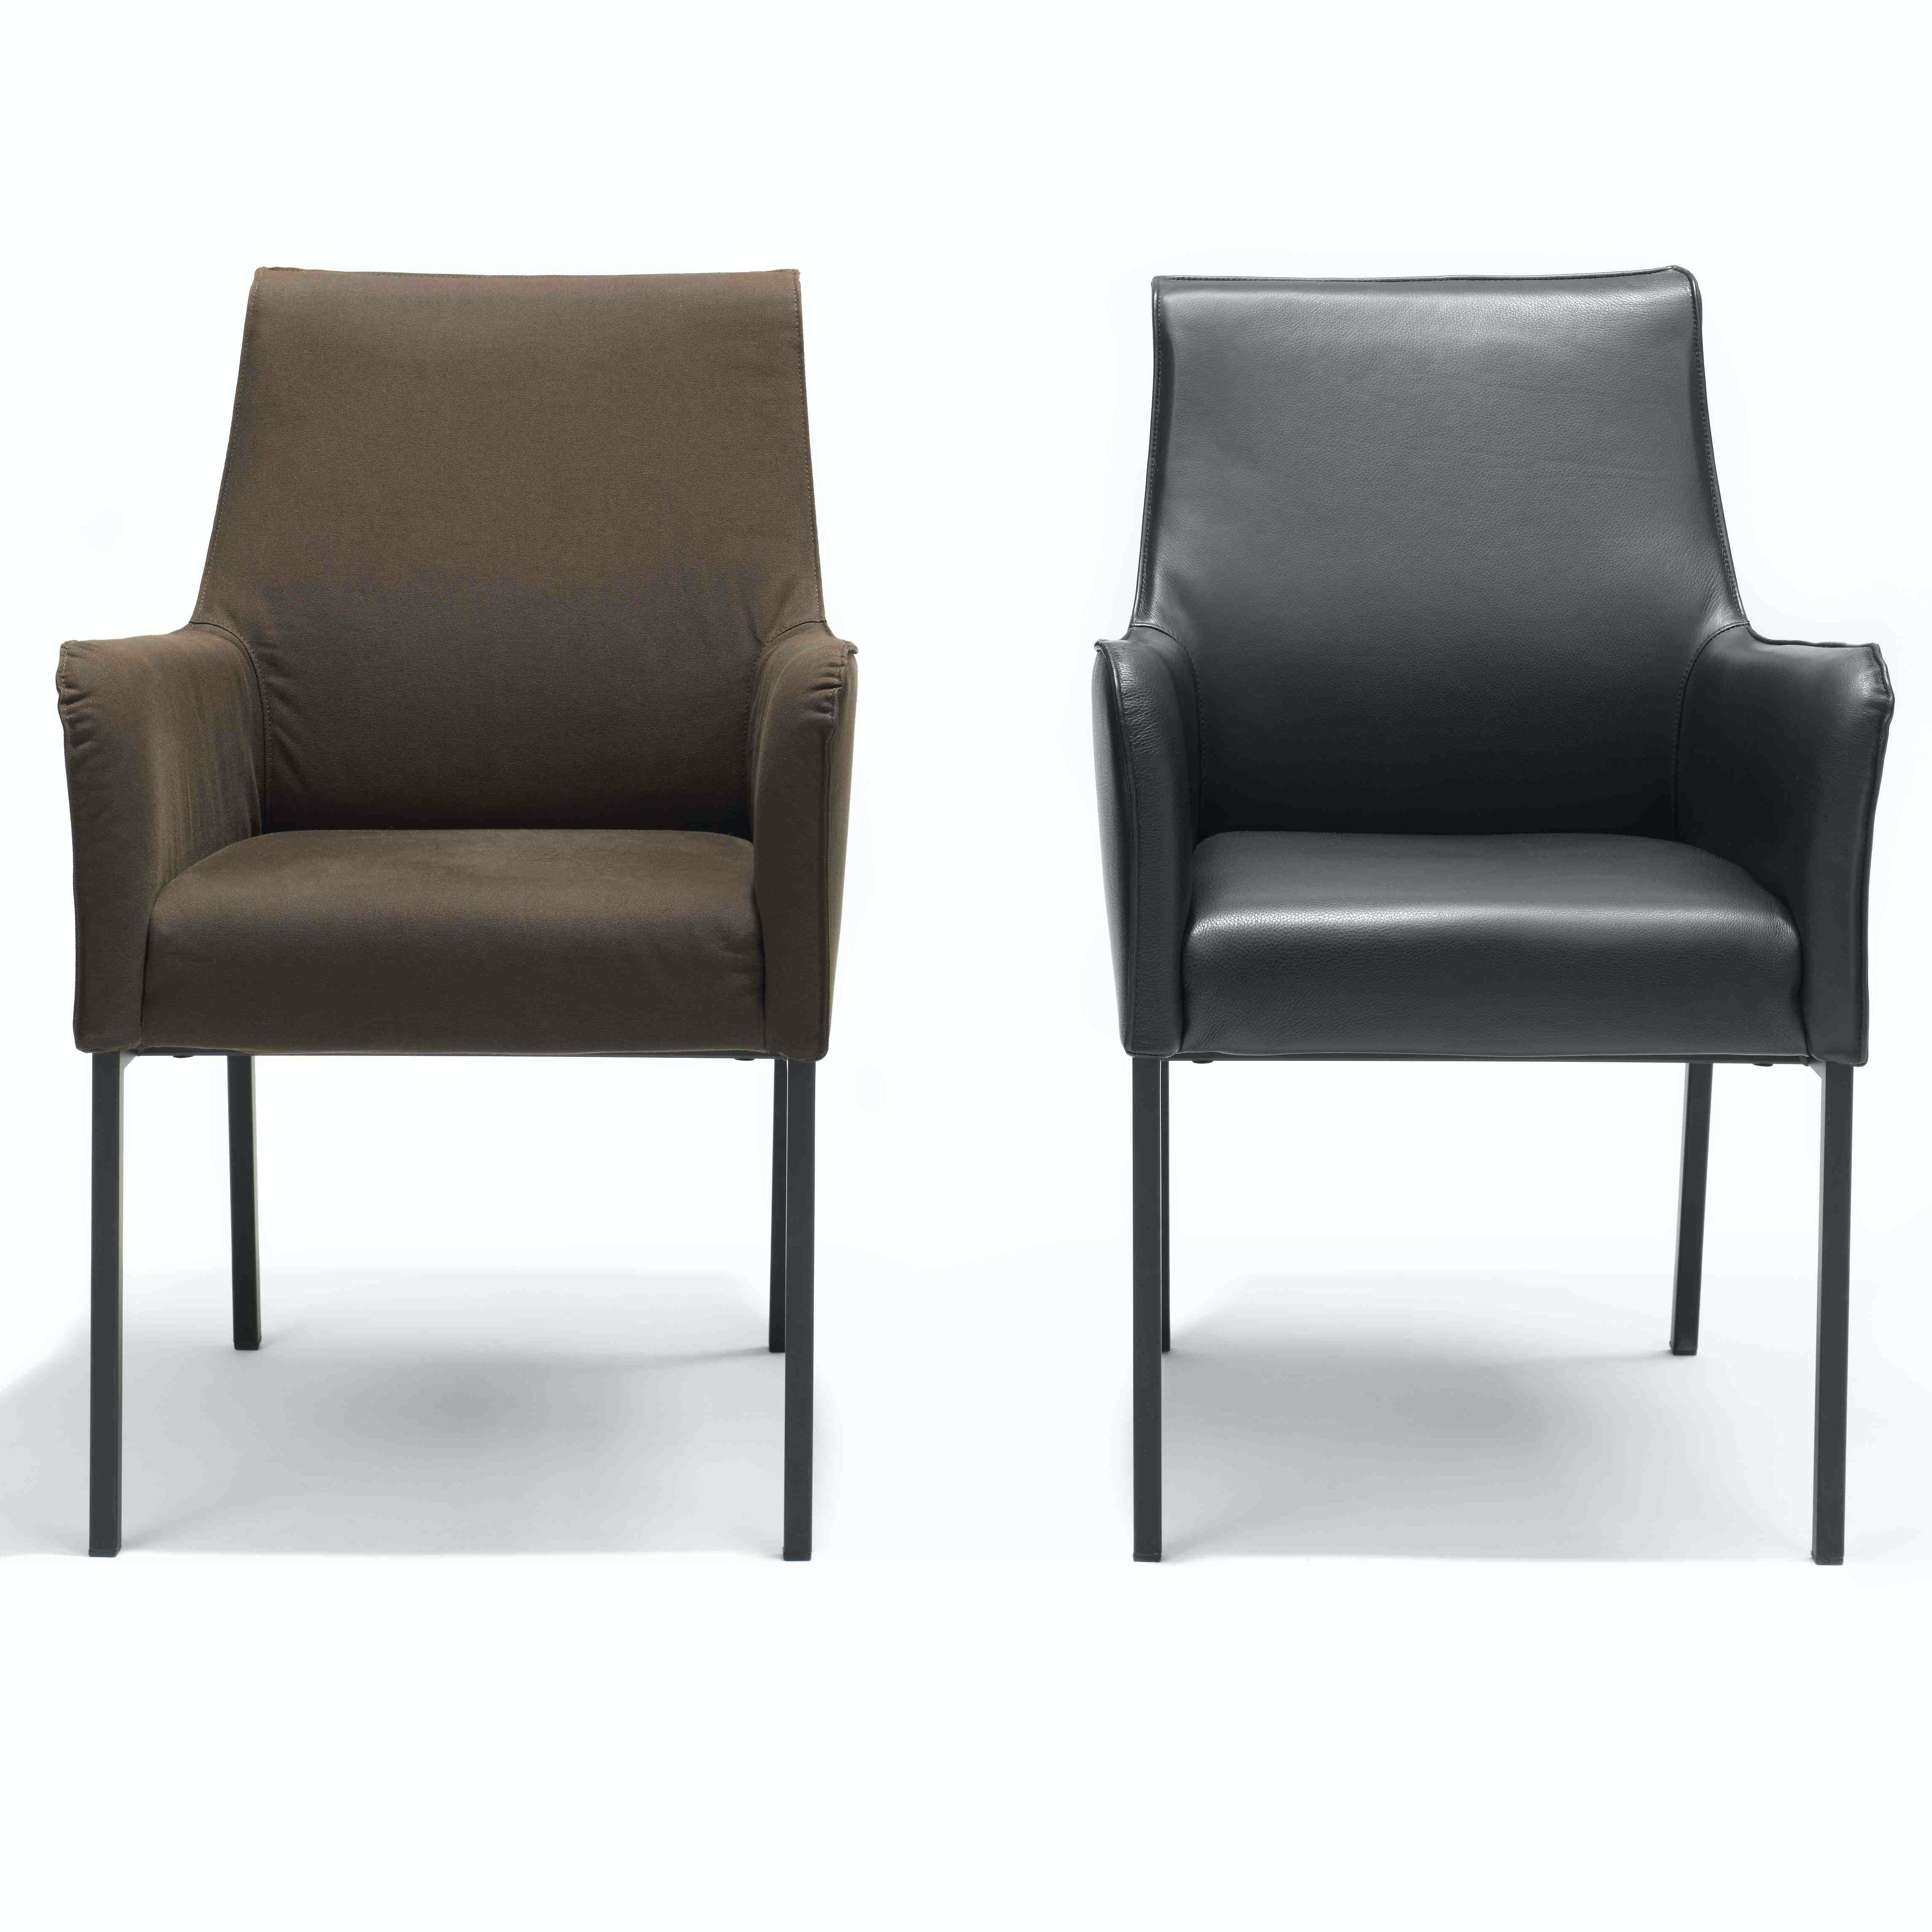 Linteloo-leather-fabric-guilietta-chair-haute-living